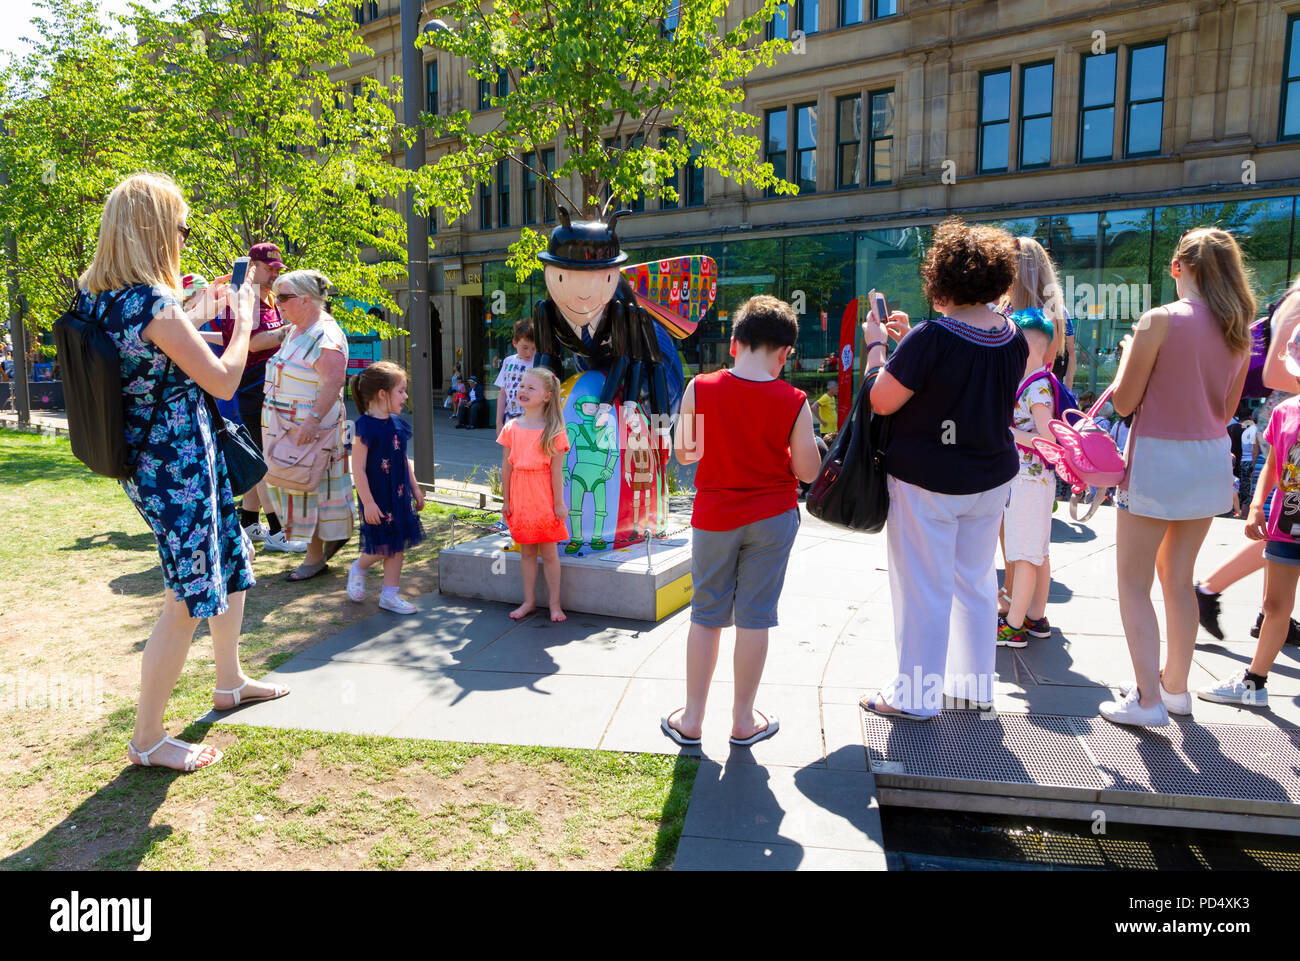 Bee in the City, public art event in the City of Manchester. Over 100 bees on a free family fun trail. - Stock Image